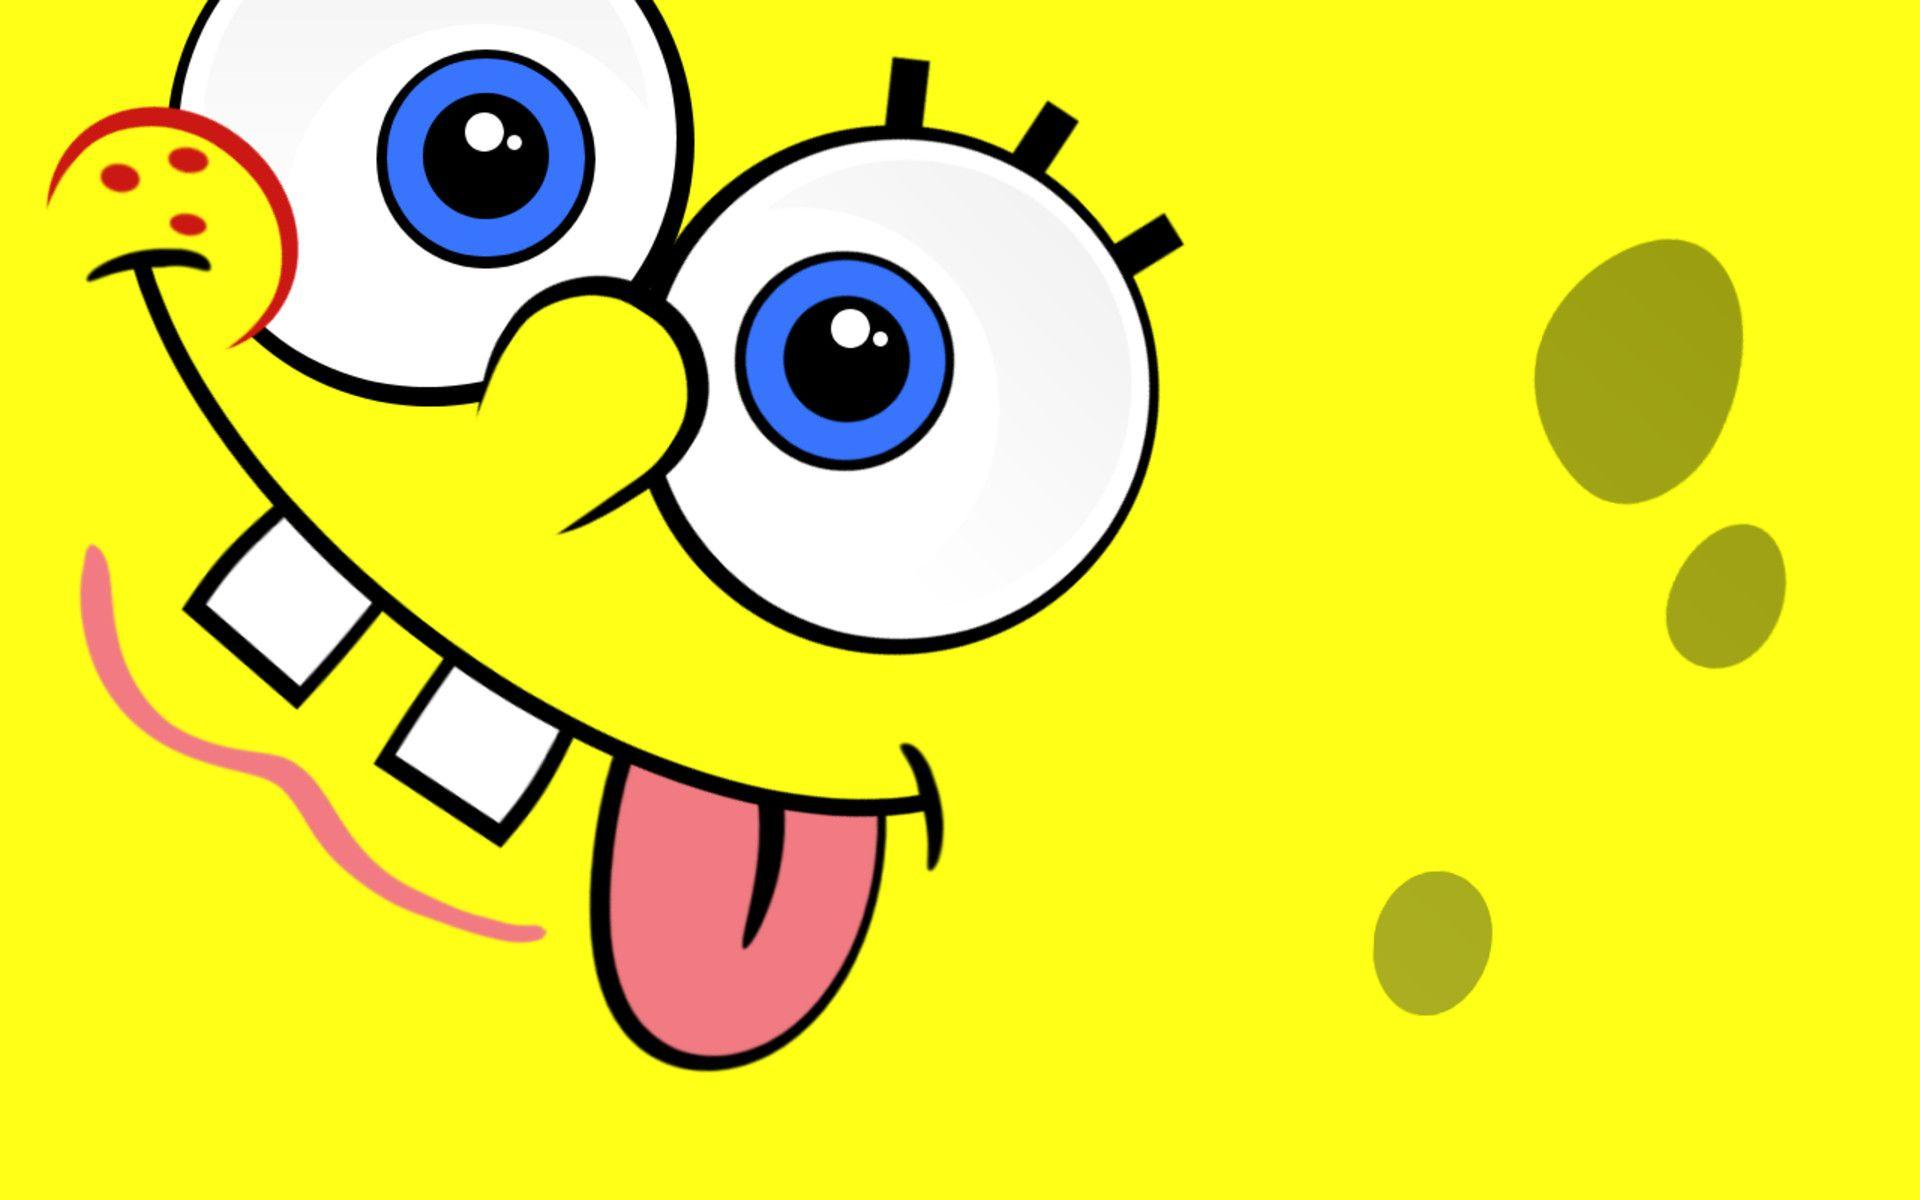 spongebob nerd wallpaper - Free Download Wallpaper Desktop ...